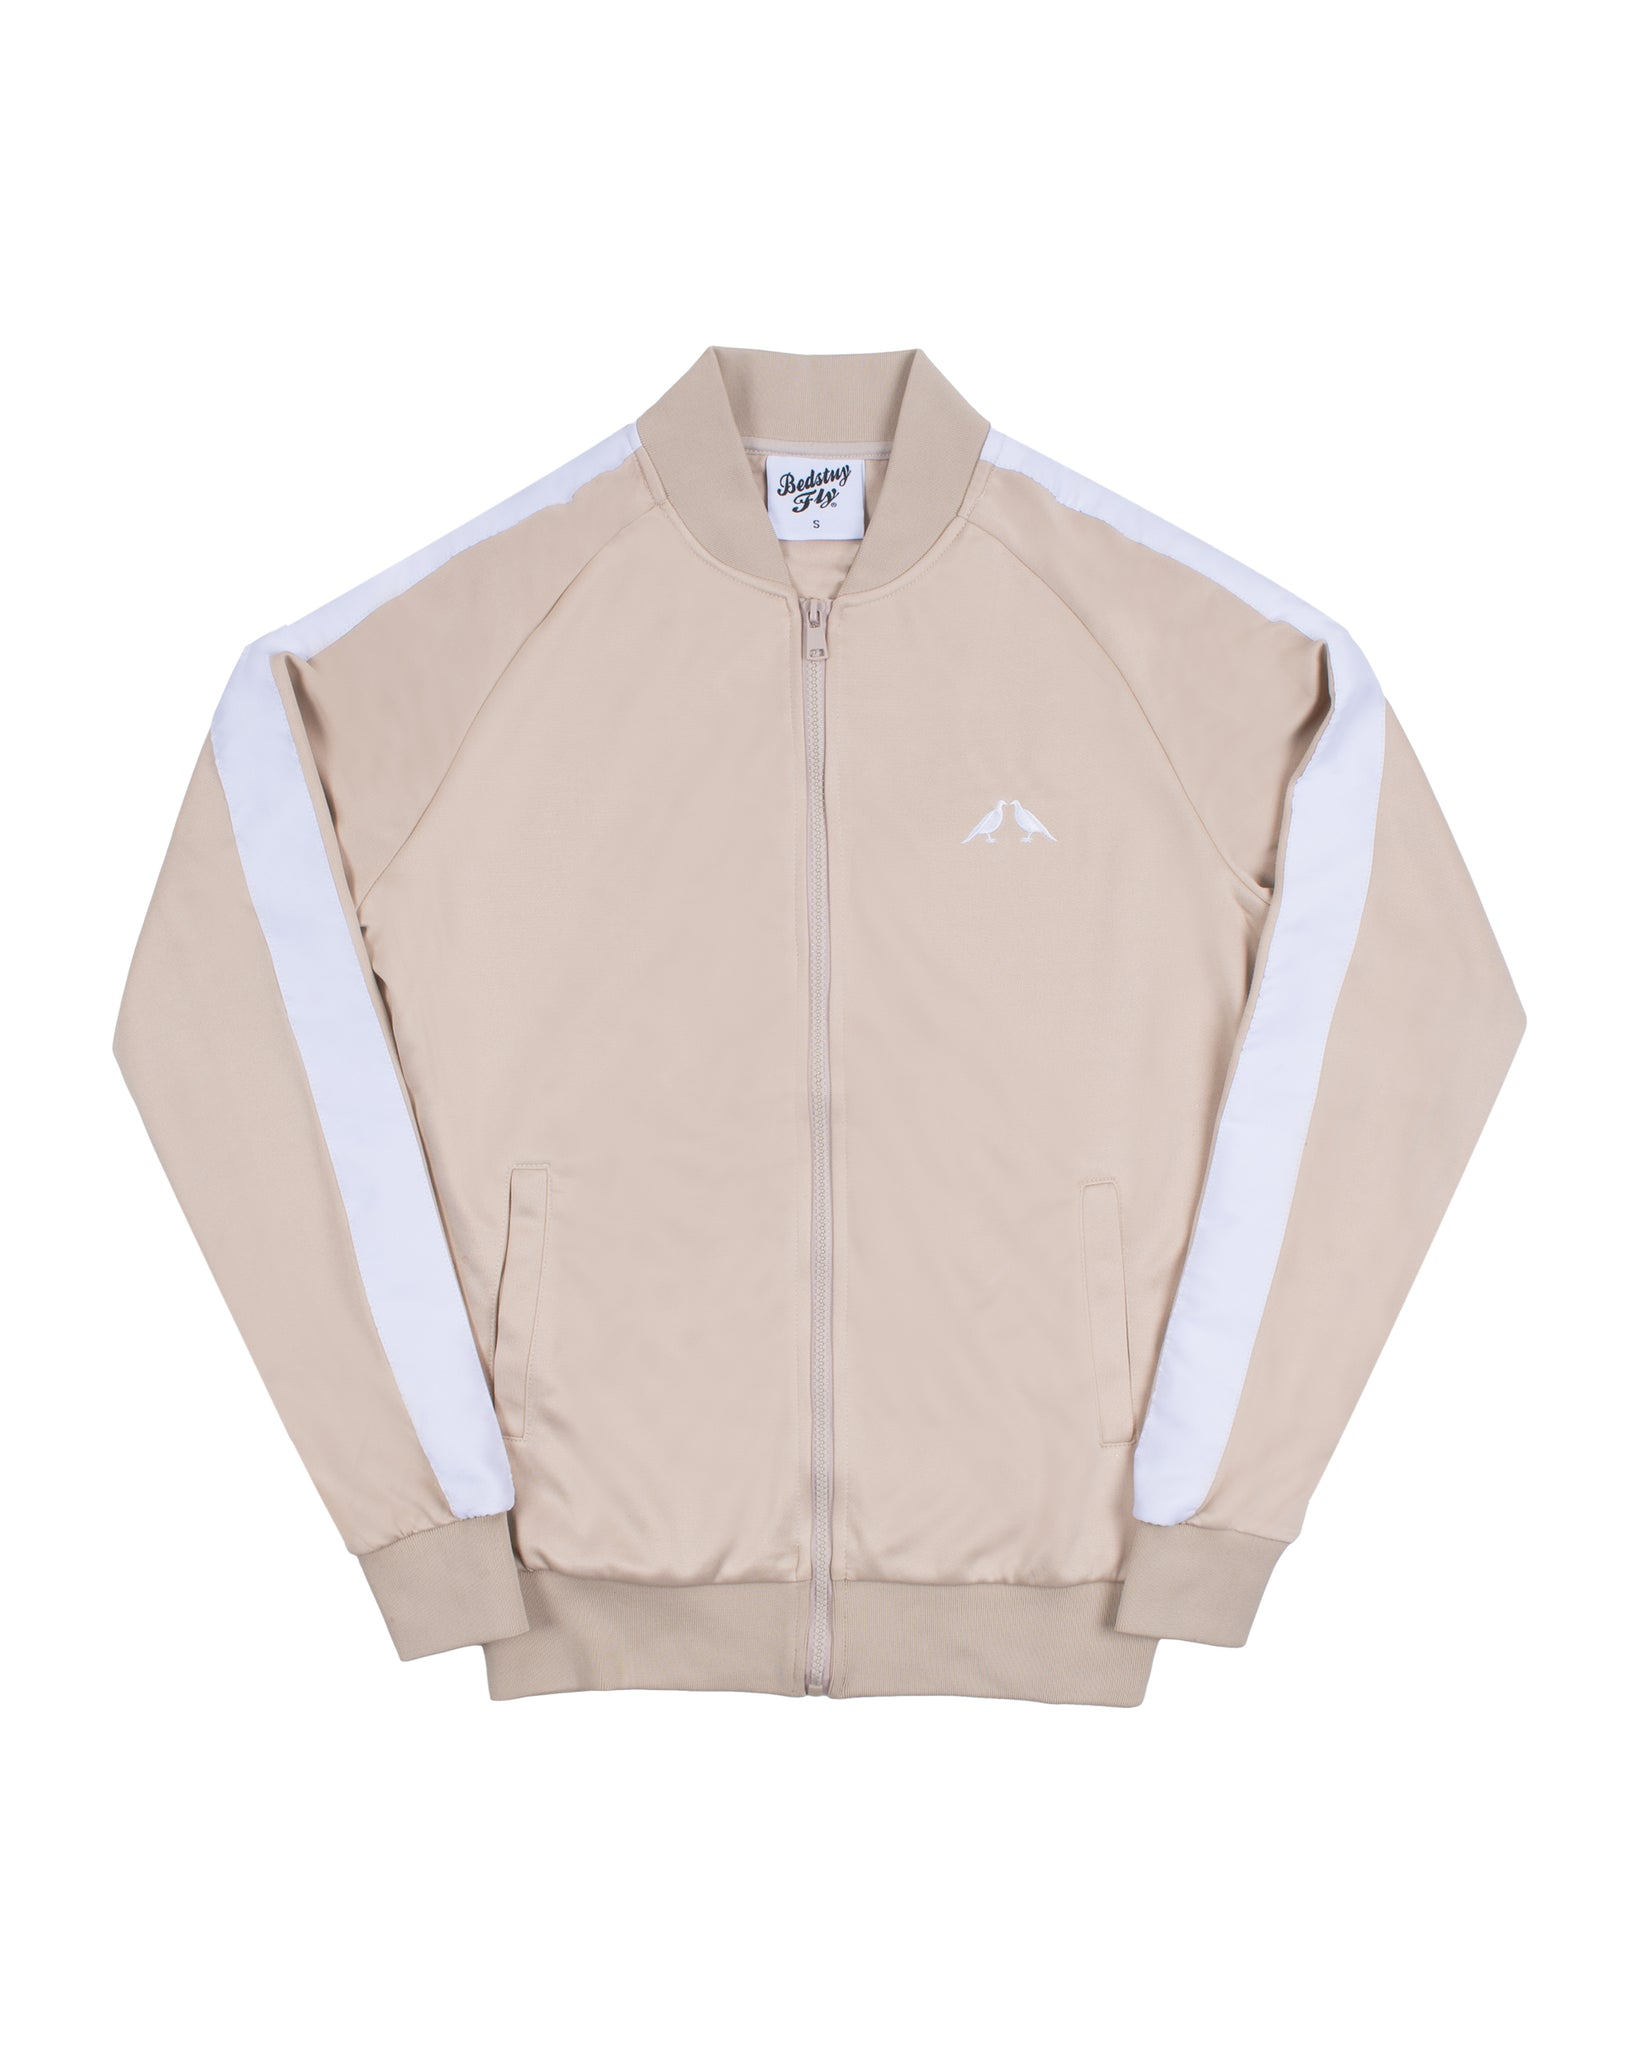 Weekend Jacket (Crm)